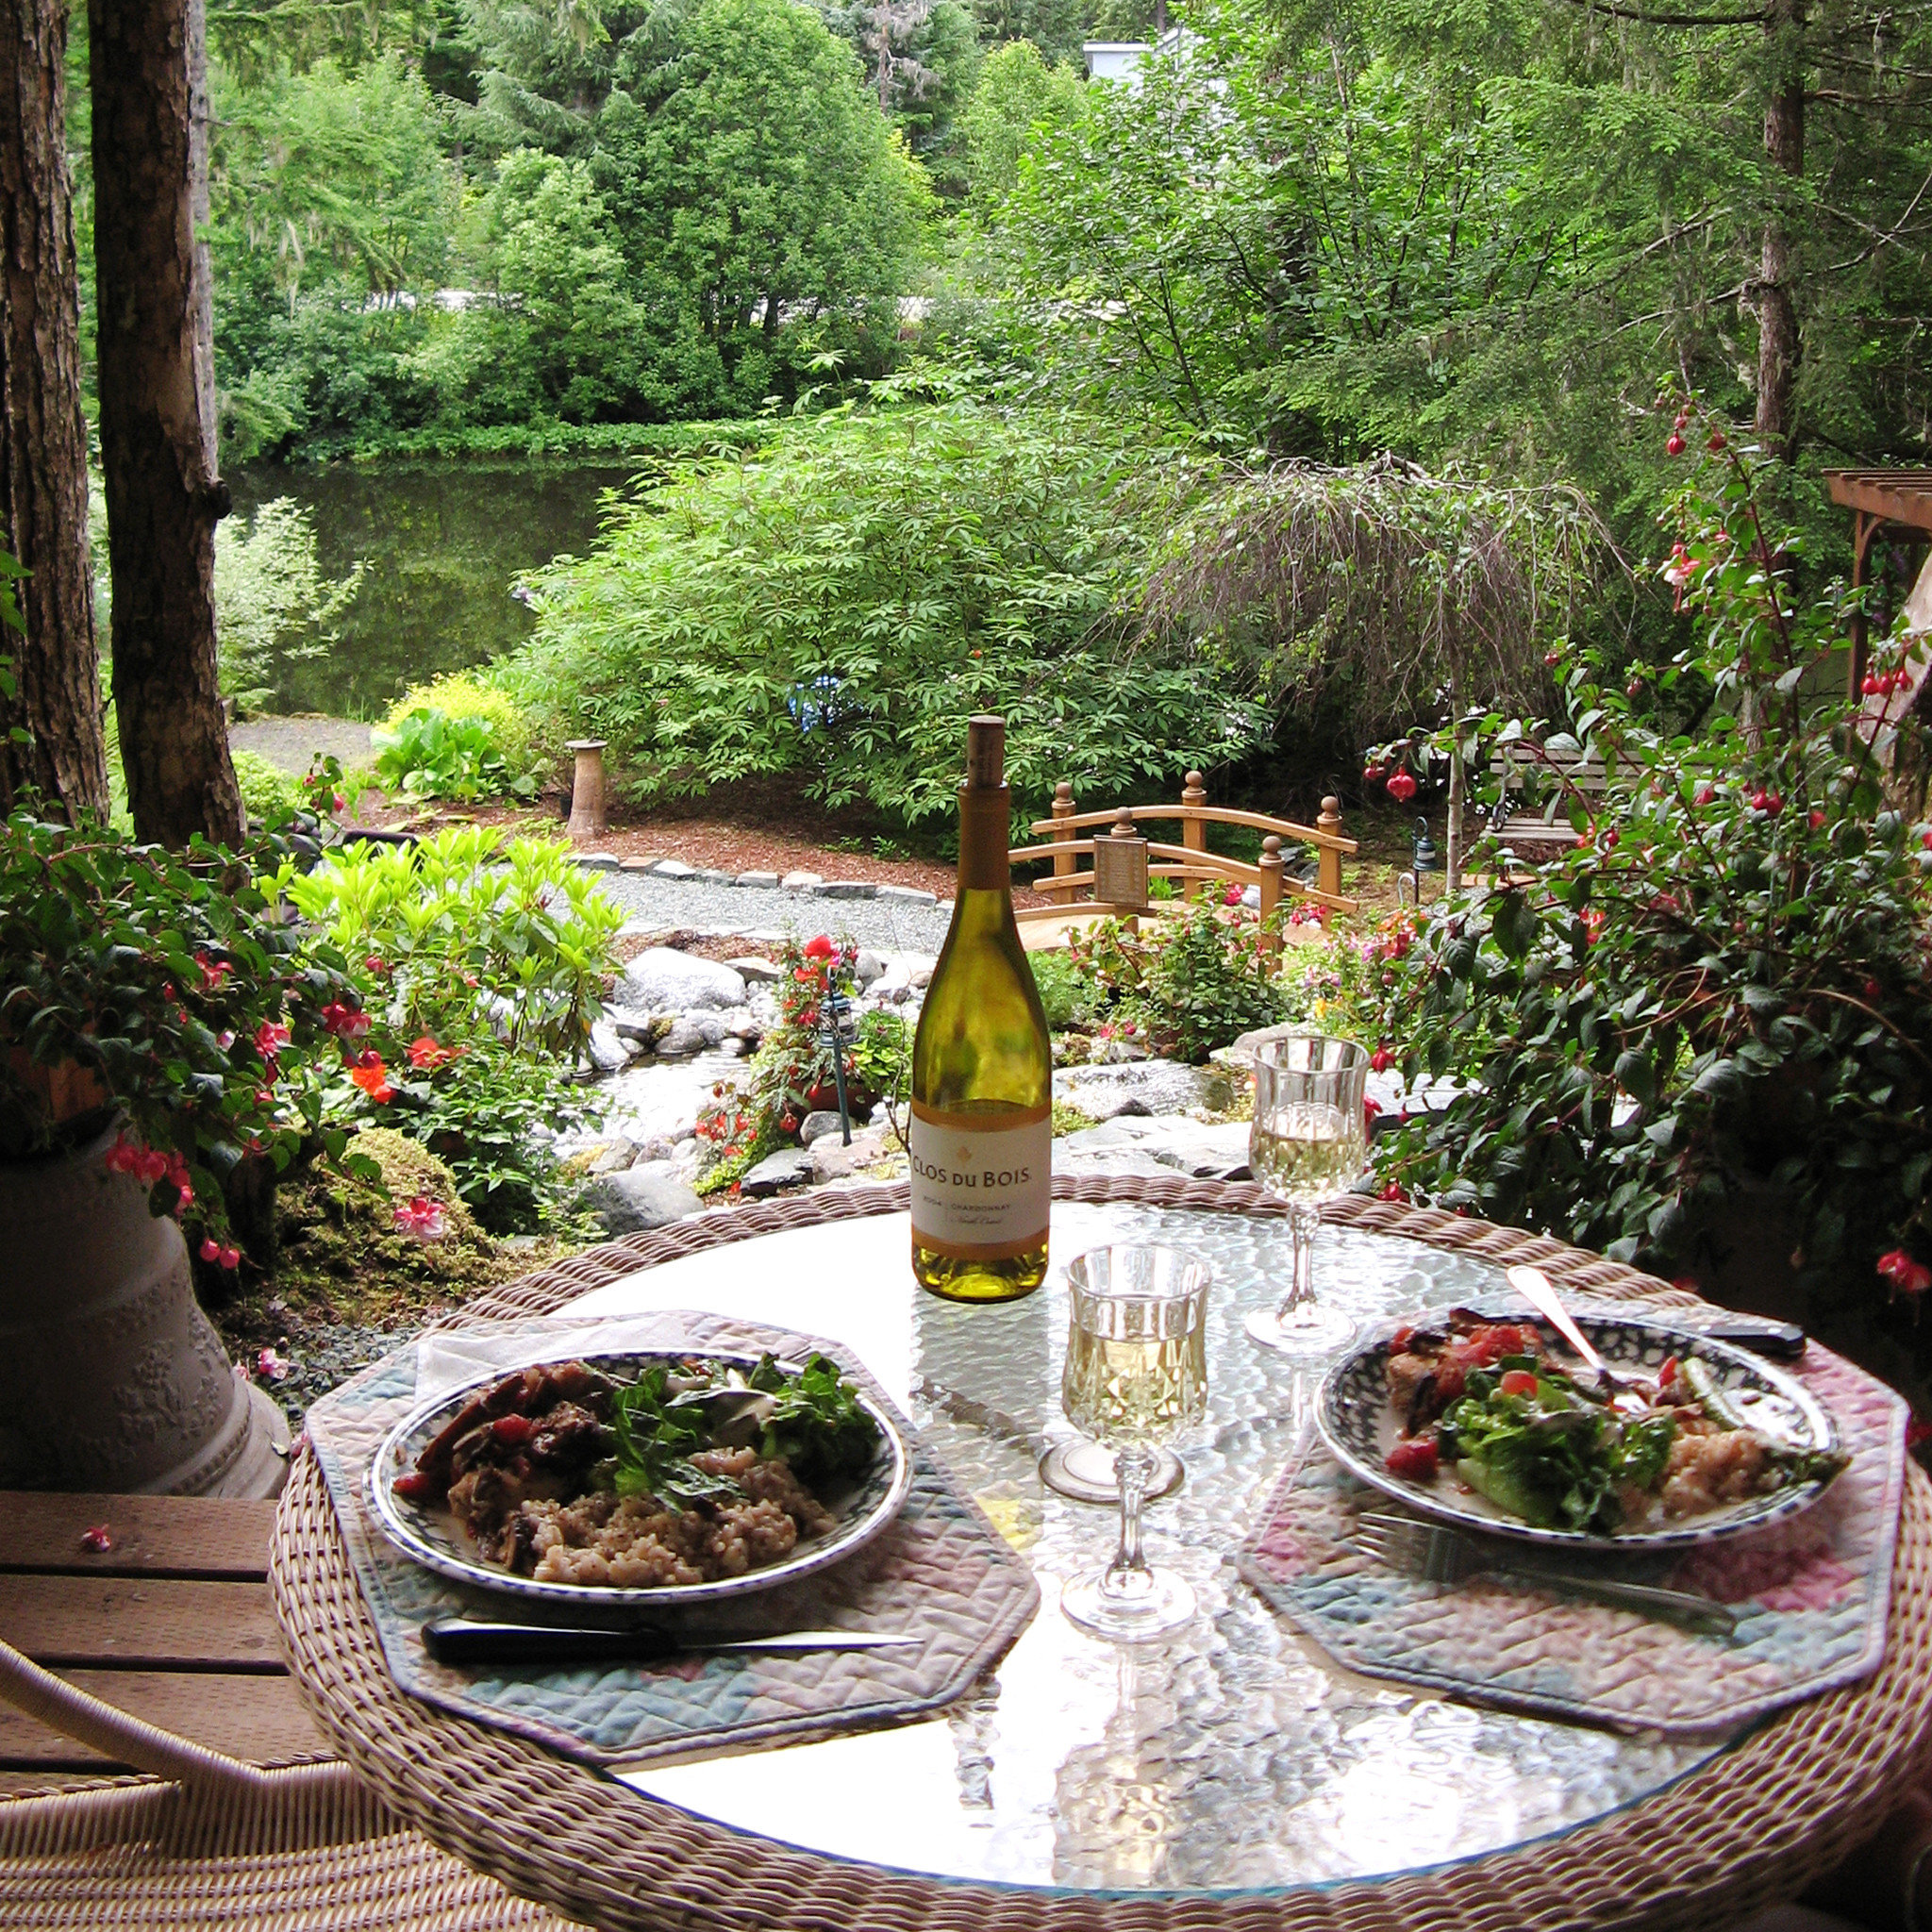 Dining Drink Eat Lodge Outdoors tree plate Garden flora botany backyard flower yard plant water feature Courtyard set Forest surrounded